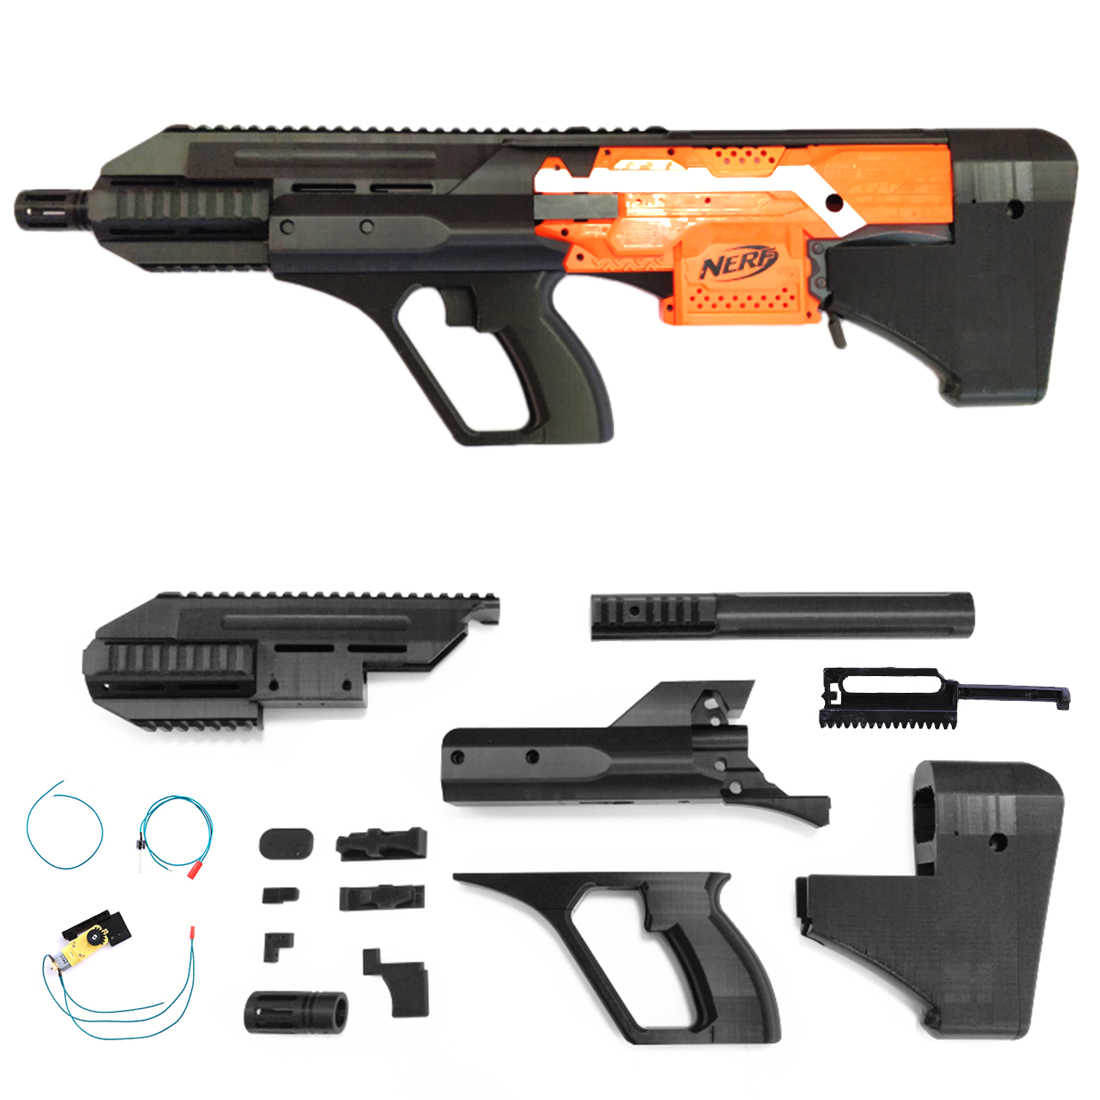 3D Printed A-UG Appearence Modification Kit for Nerf Stryfe - Black Cut Grip Version ug nx6 0实用教程